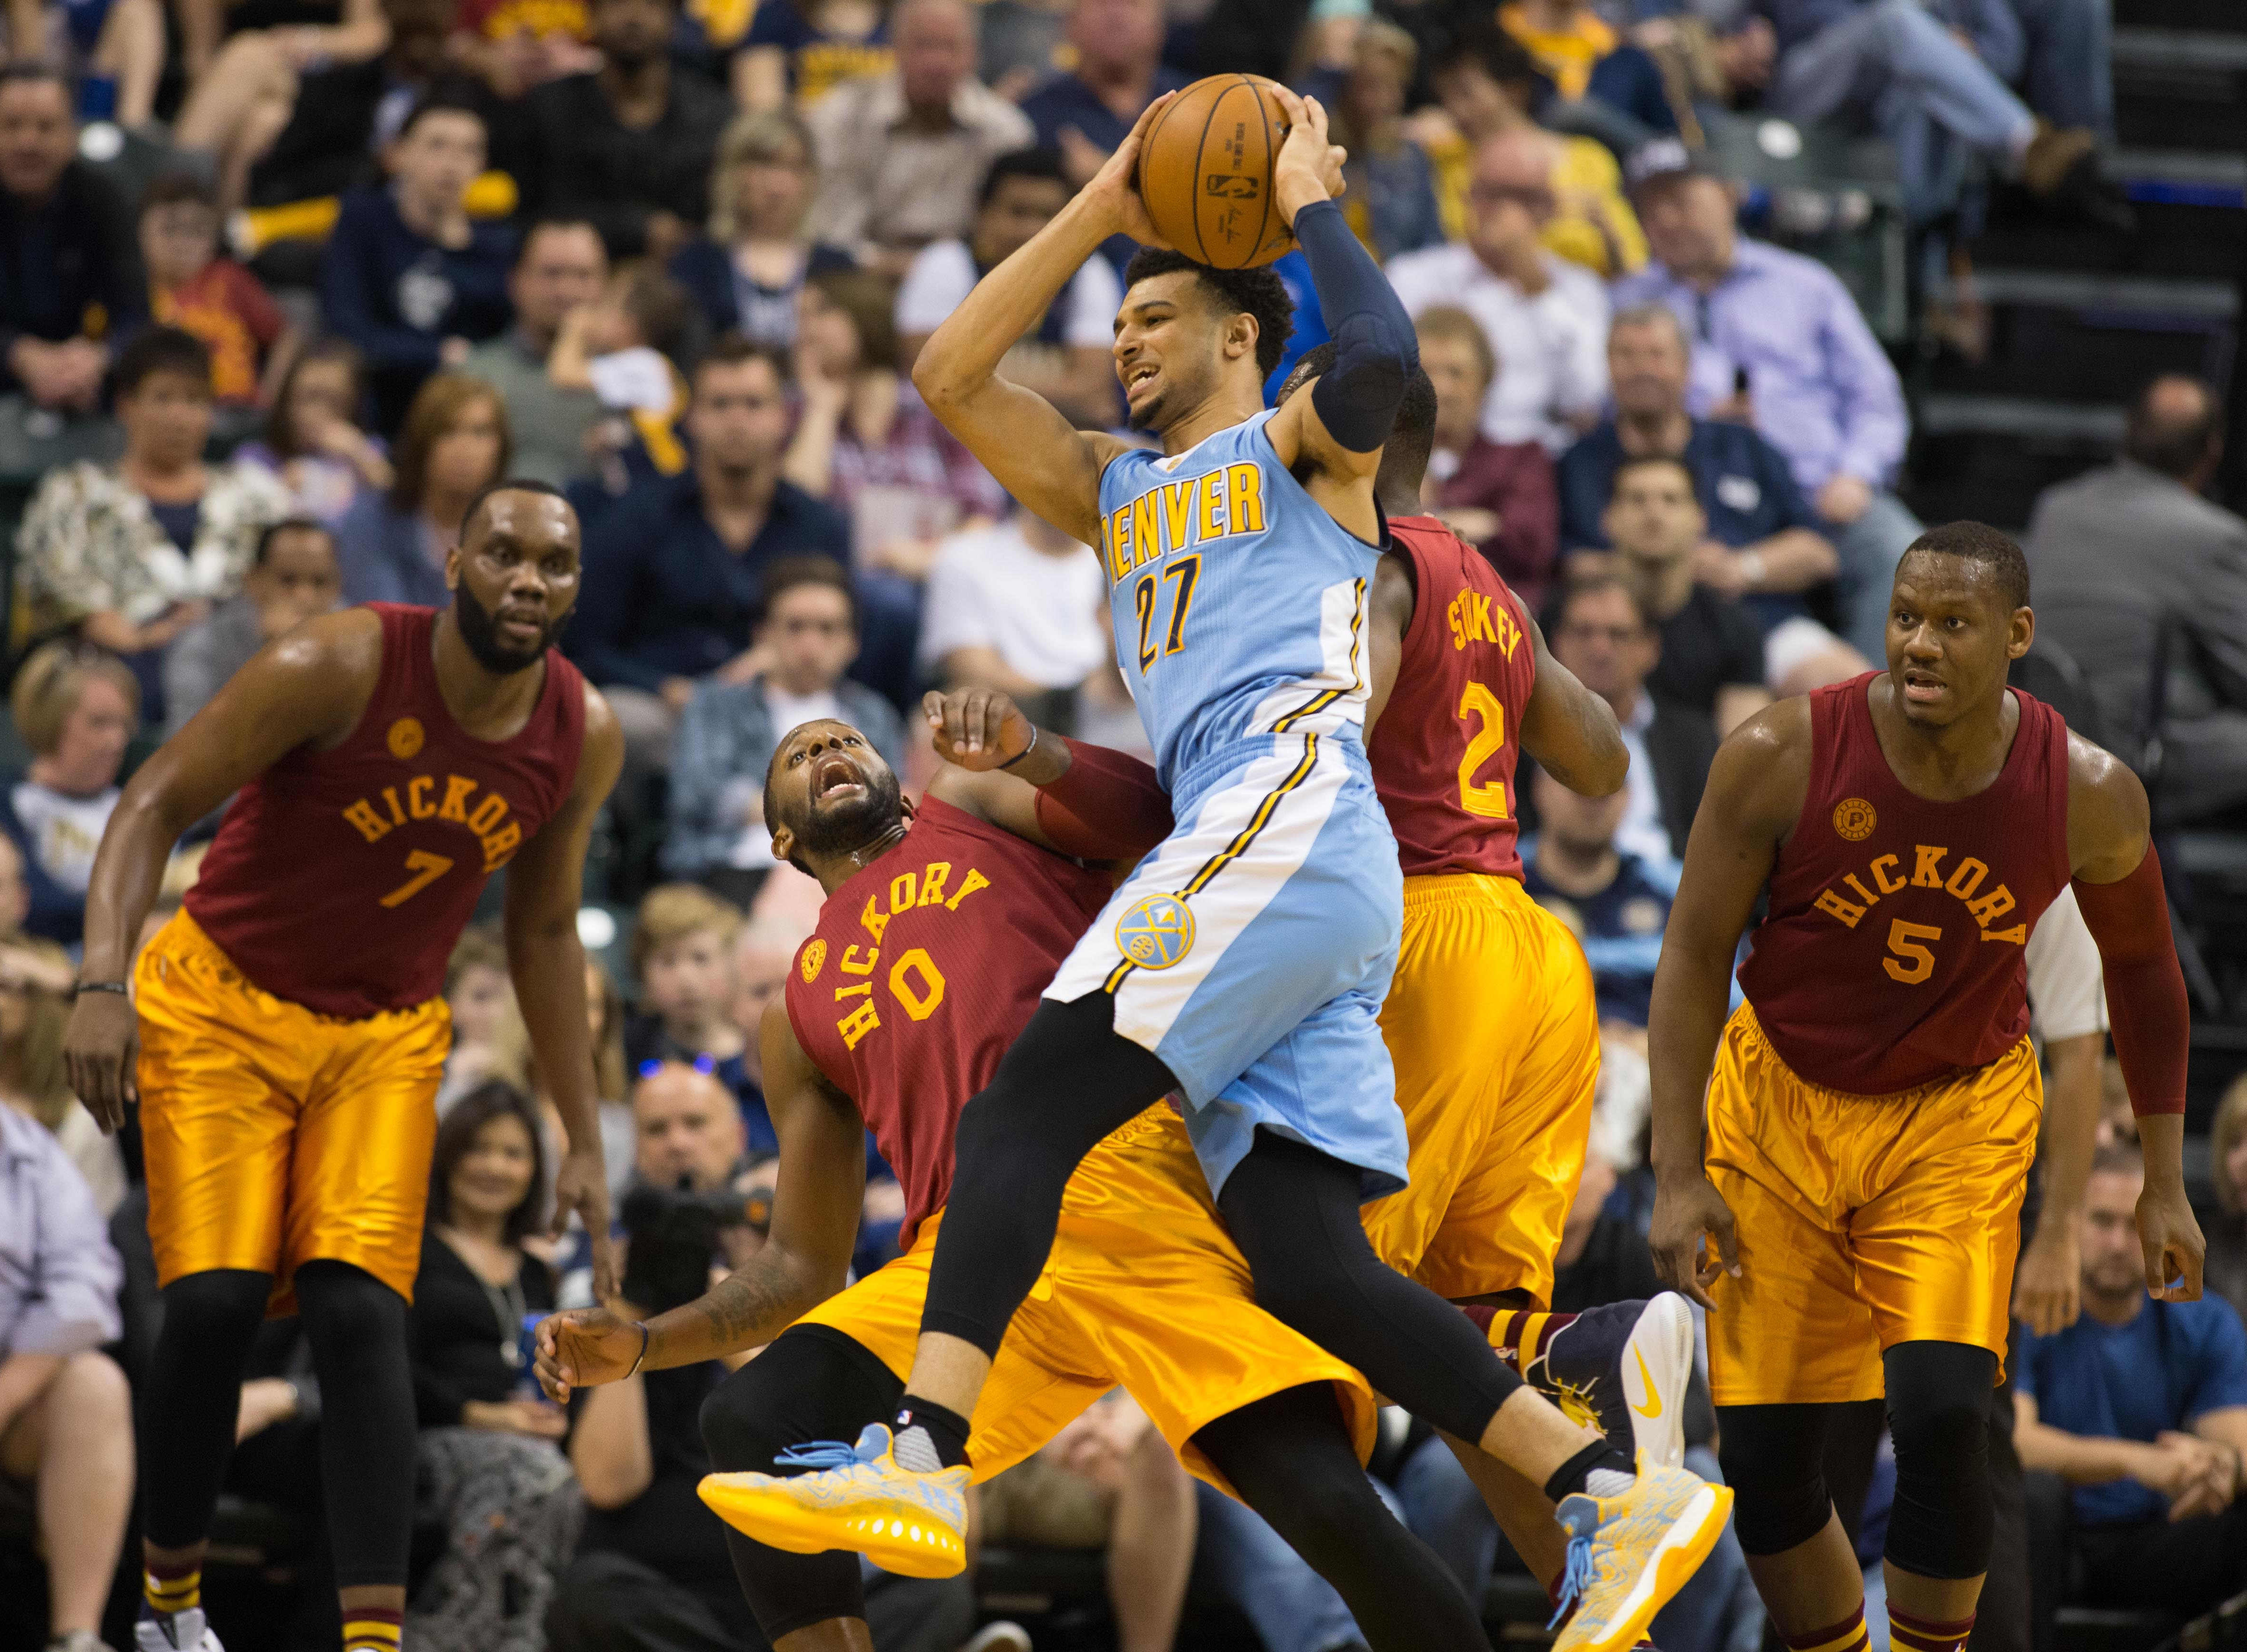 9968755-nba-denver-nuggets-at-indiana-pacers